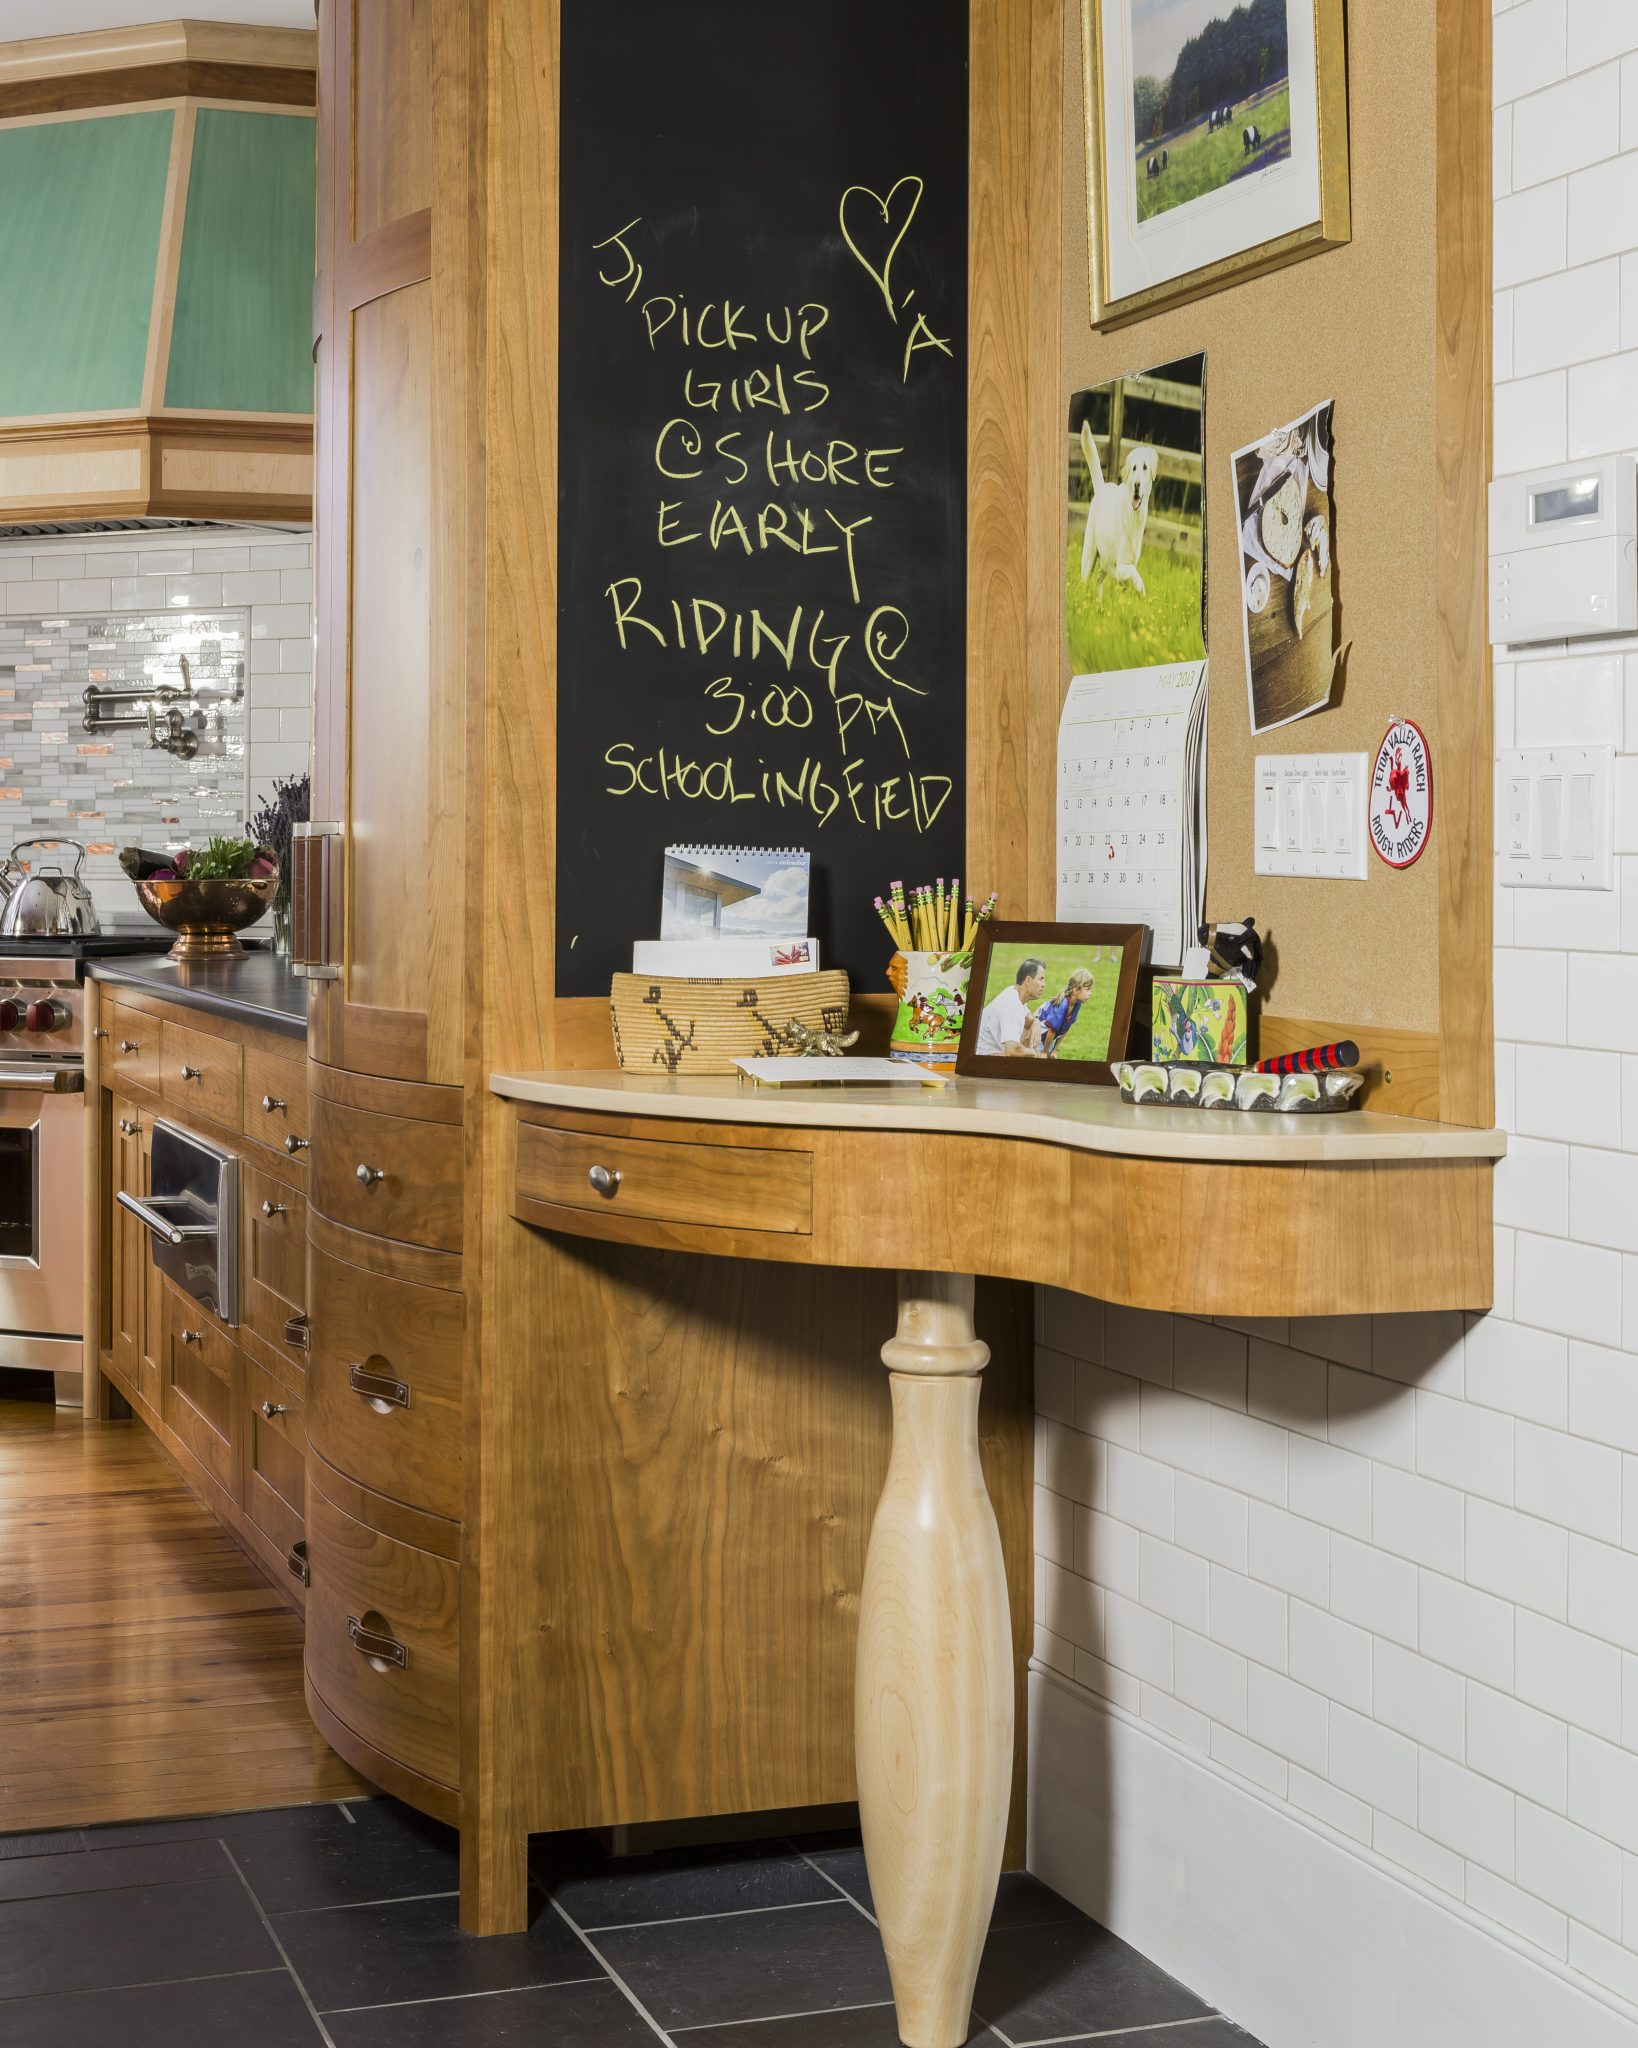 Blackboard message center desk in New England farmhouse kitchen. by Kathy Marshall Design